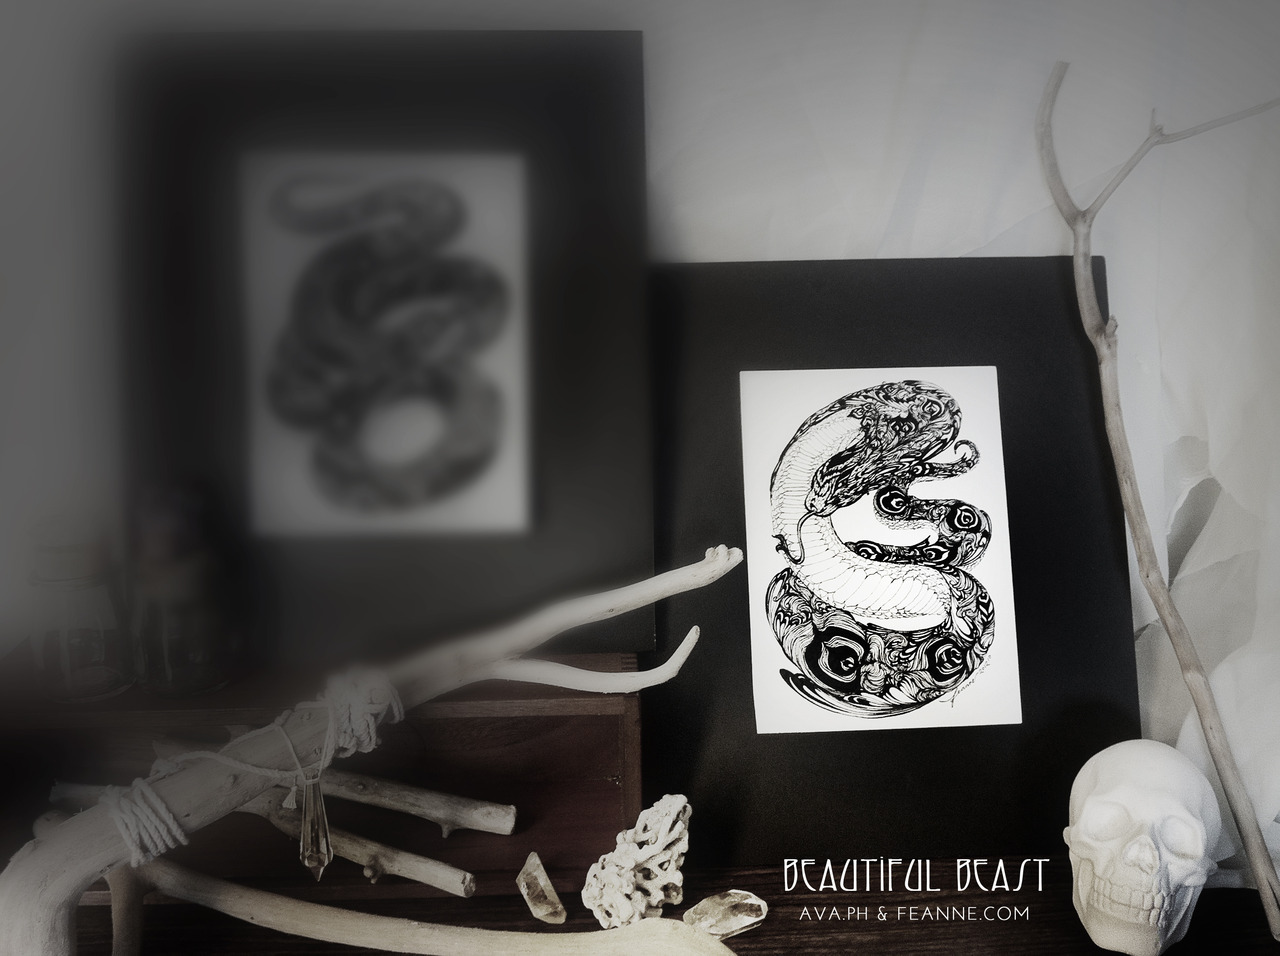 Coming soon: BEAUTIFUL BEAST ~ a series of small original artworks featuring imaginary and fantastic creatures, exclusively on AVA.ph, for the benefit of the kids at PGH (c/o the Black Pearl Philippines' holiday visit in December)  ♥ Feanne / facebook / blog